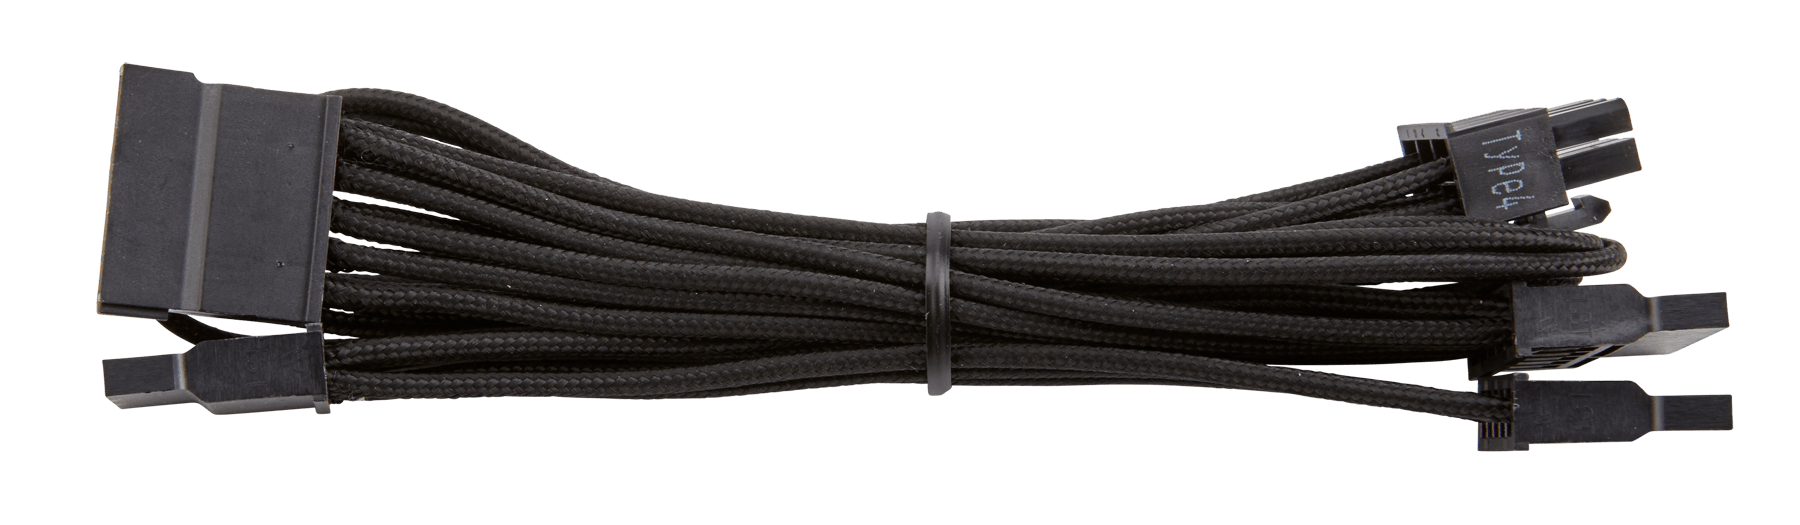 Premium Individually Sleeved SATA Cable, Type 4 (Generation